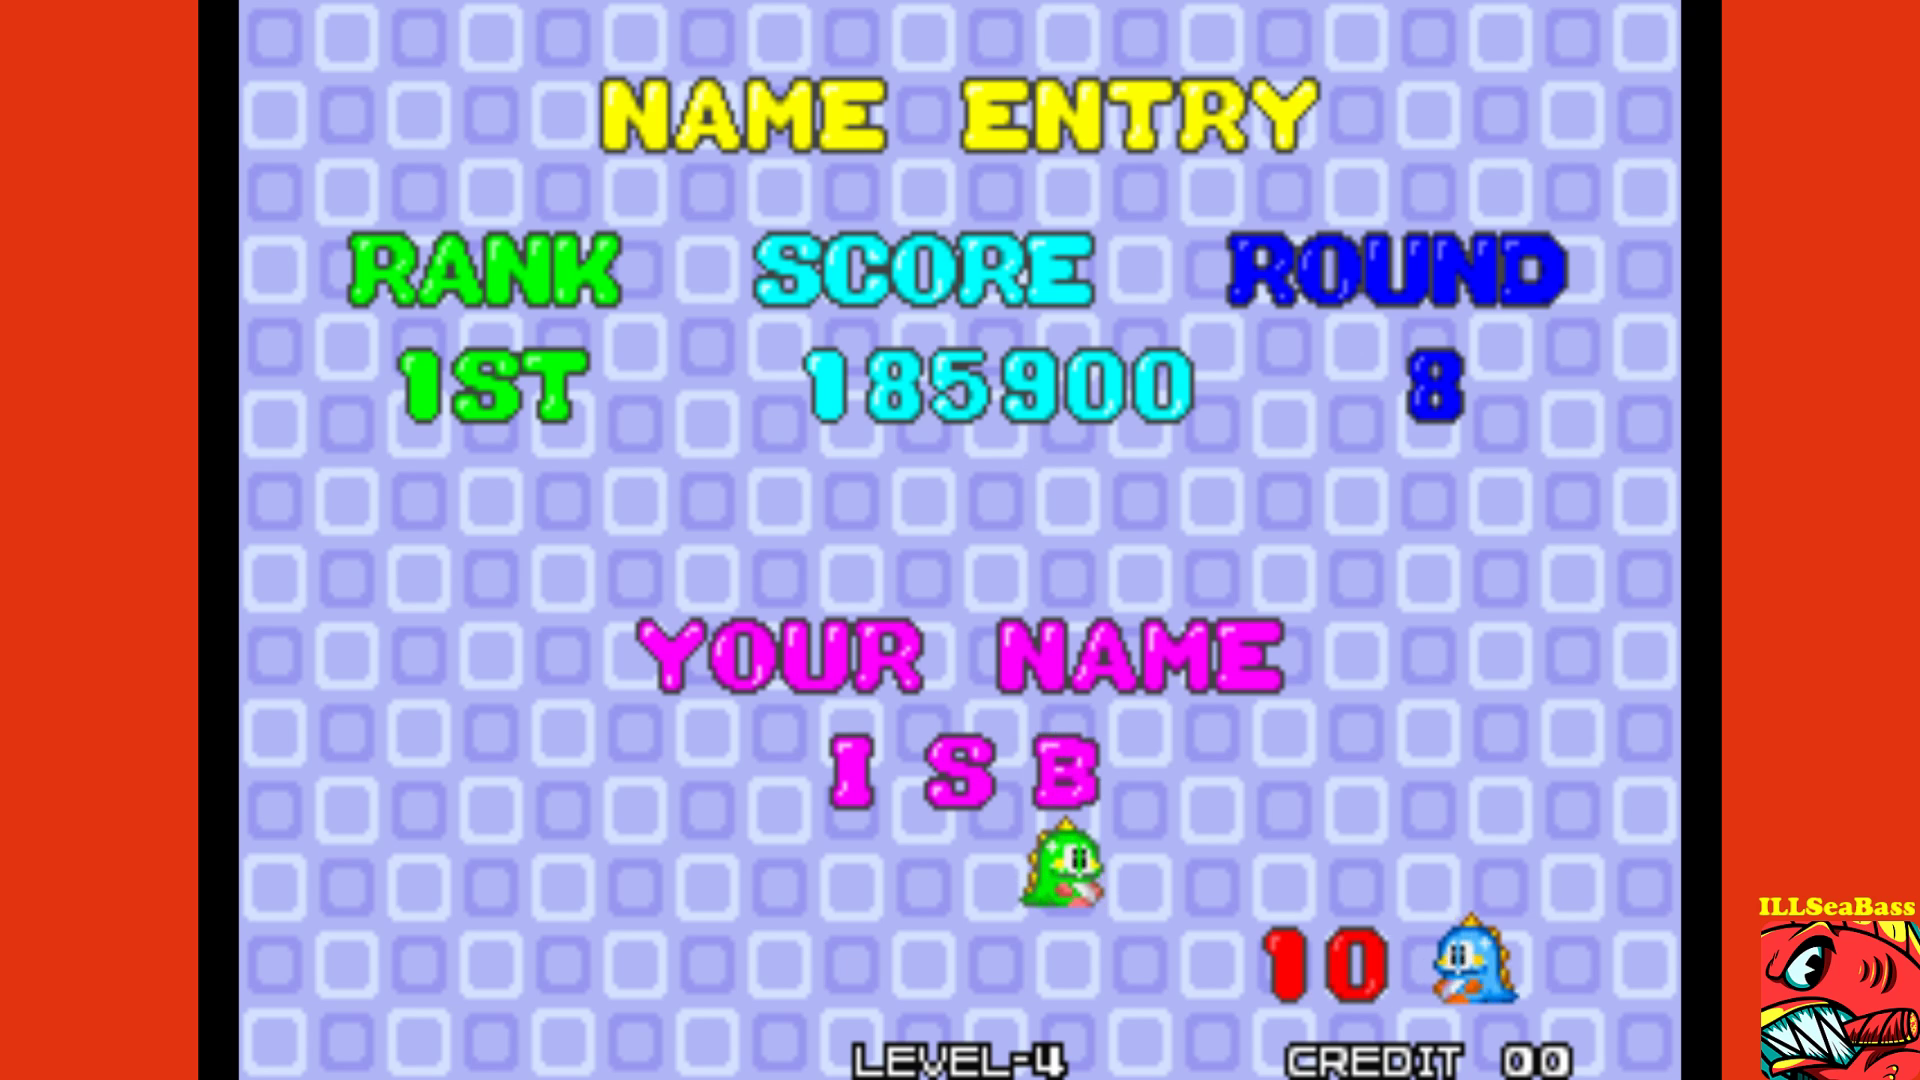 ILLSeaBass: Puzzle Bobble / Bust-A-Move [pbobblen] (Arcade Emulated / M.A.M.E.) 185,900 points on 2017-09-18 21:14:45